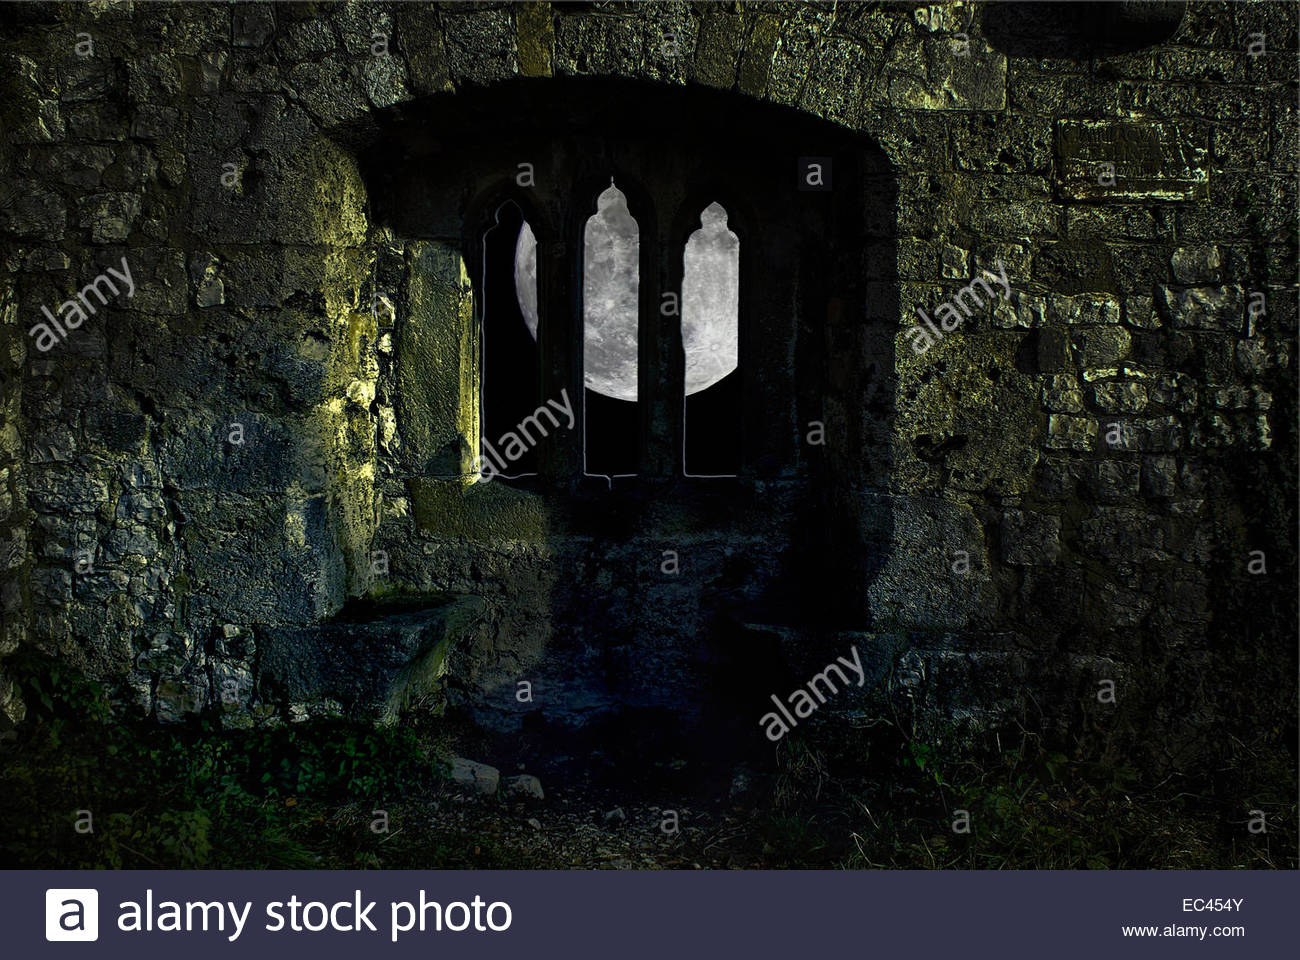 Big fat moon shines through medieval castle window photo, composition. Stock Photo